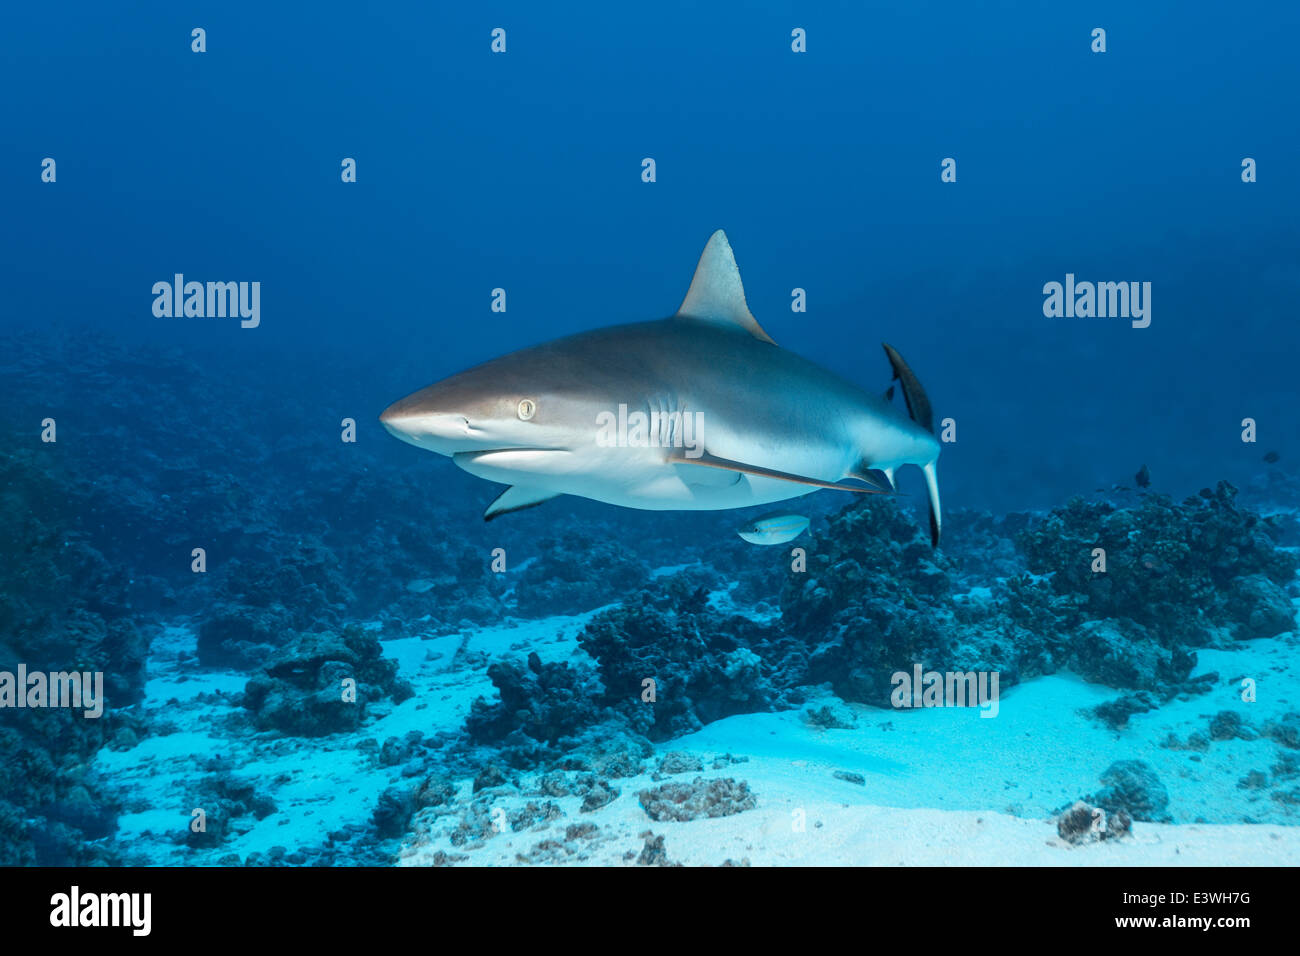 Grey Reef Shark (Carcharhinus amblyrhynchos) over a sandy sea bottom, Bora Bora, Leeward Islands, Society Islands - Stock Image